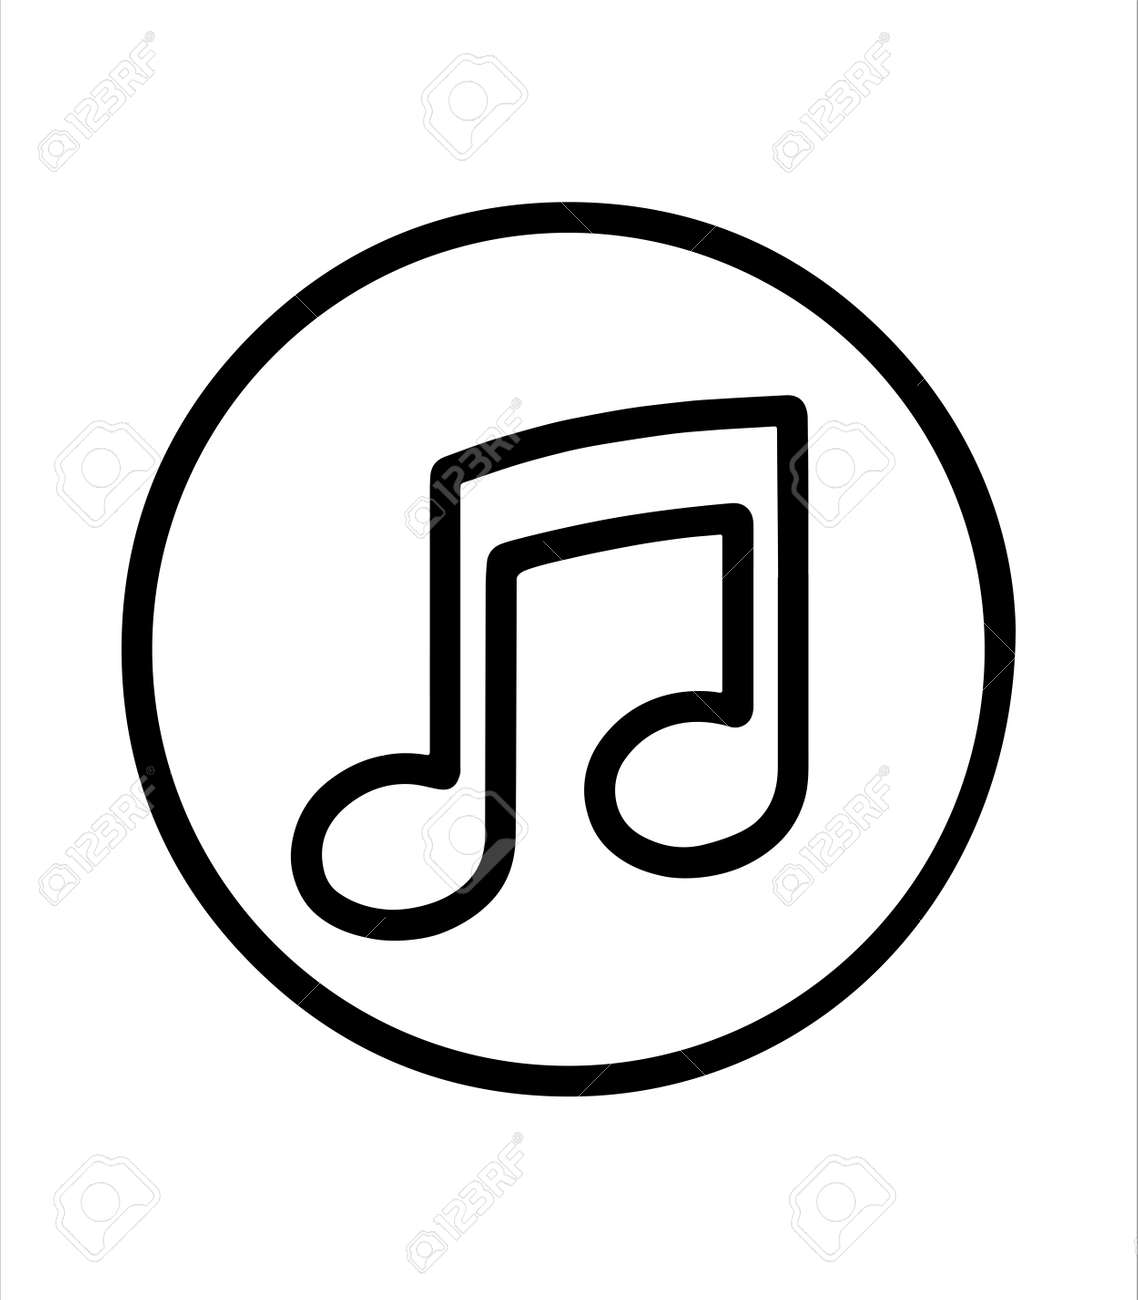 musical note and music icon - 166548358